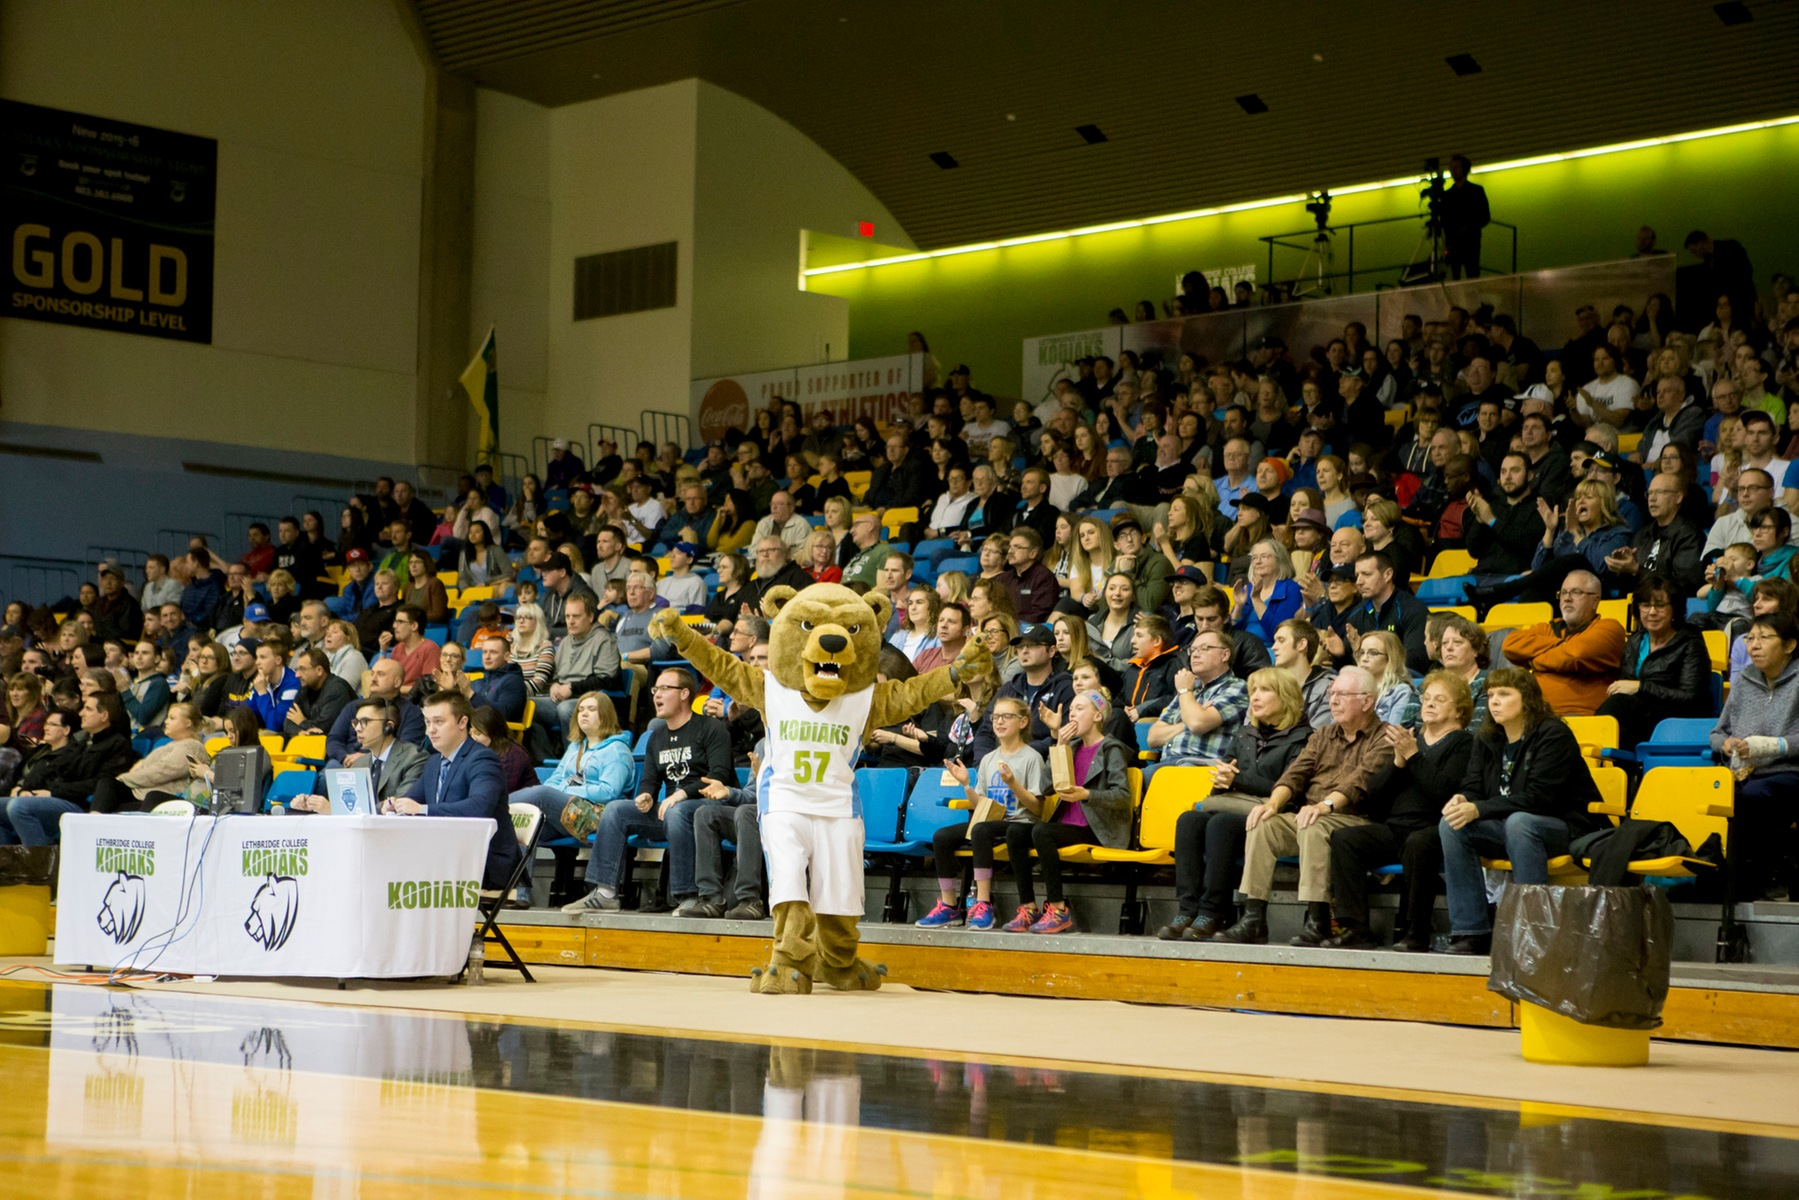 The Val Matteotti Gymnasium was packed for the Gold Medal Match of the 2016 ACAC Women's Basketball Championships.